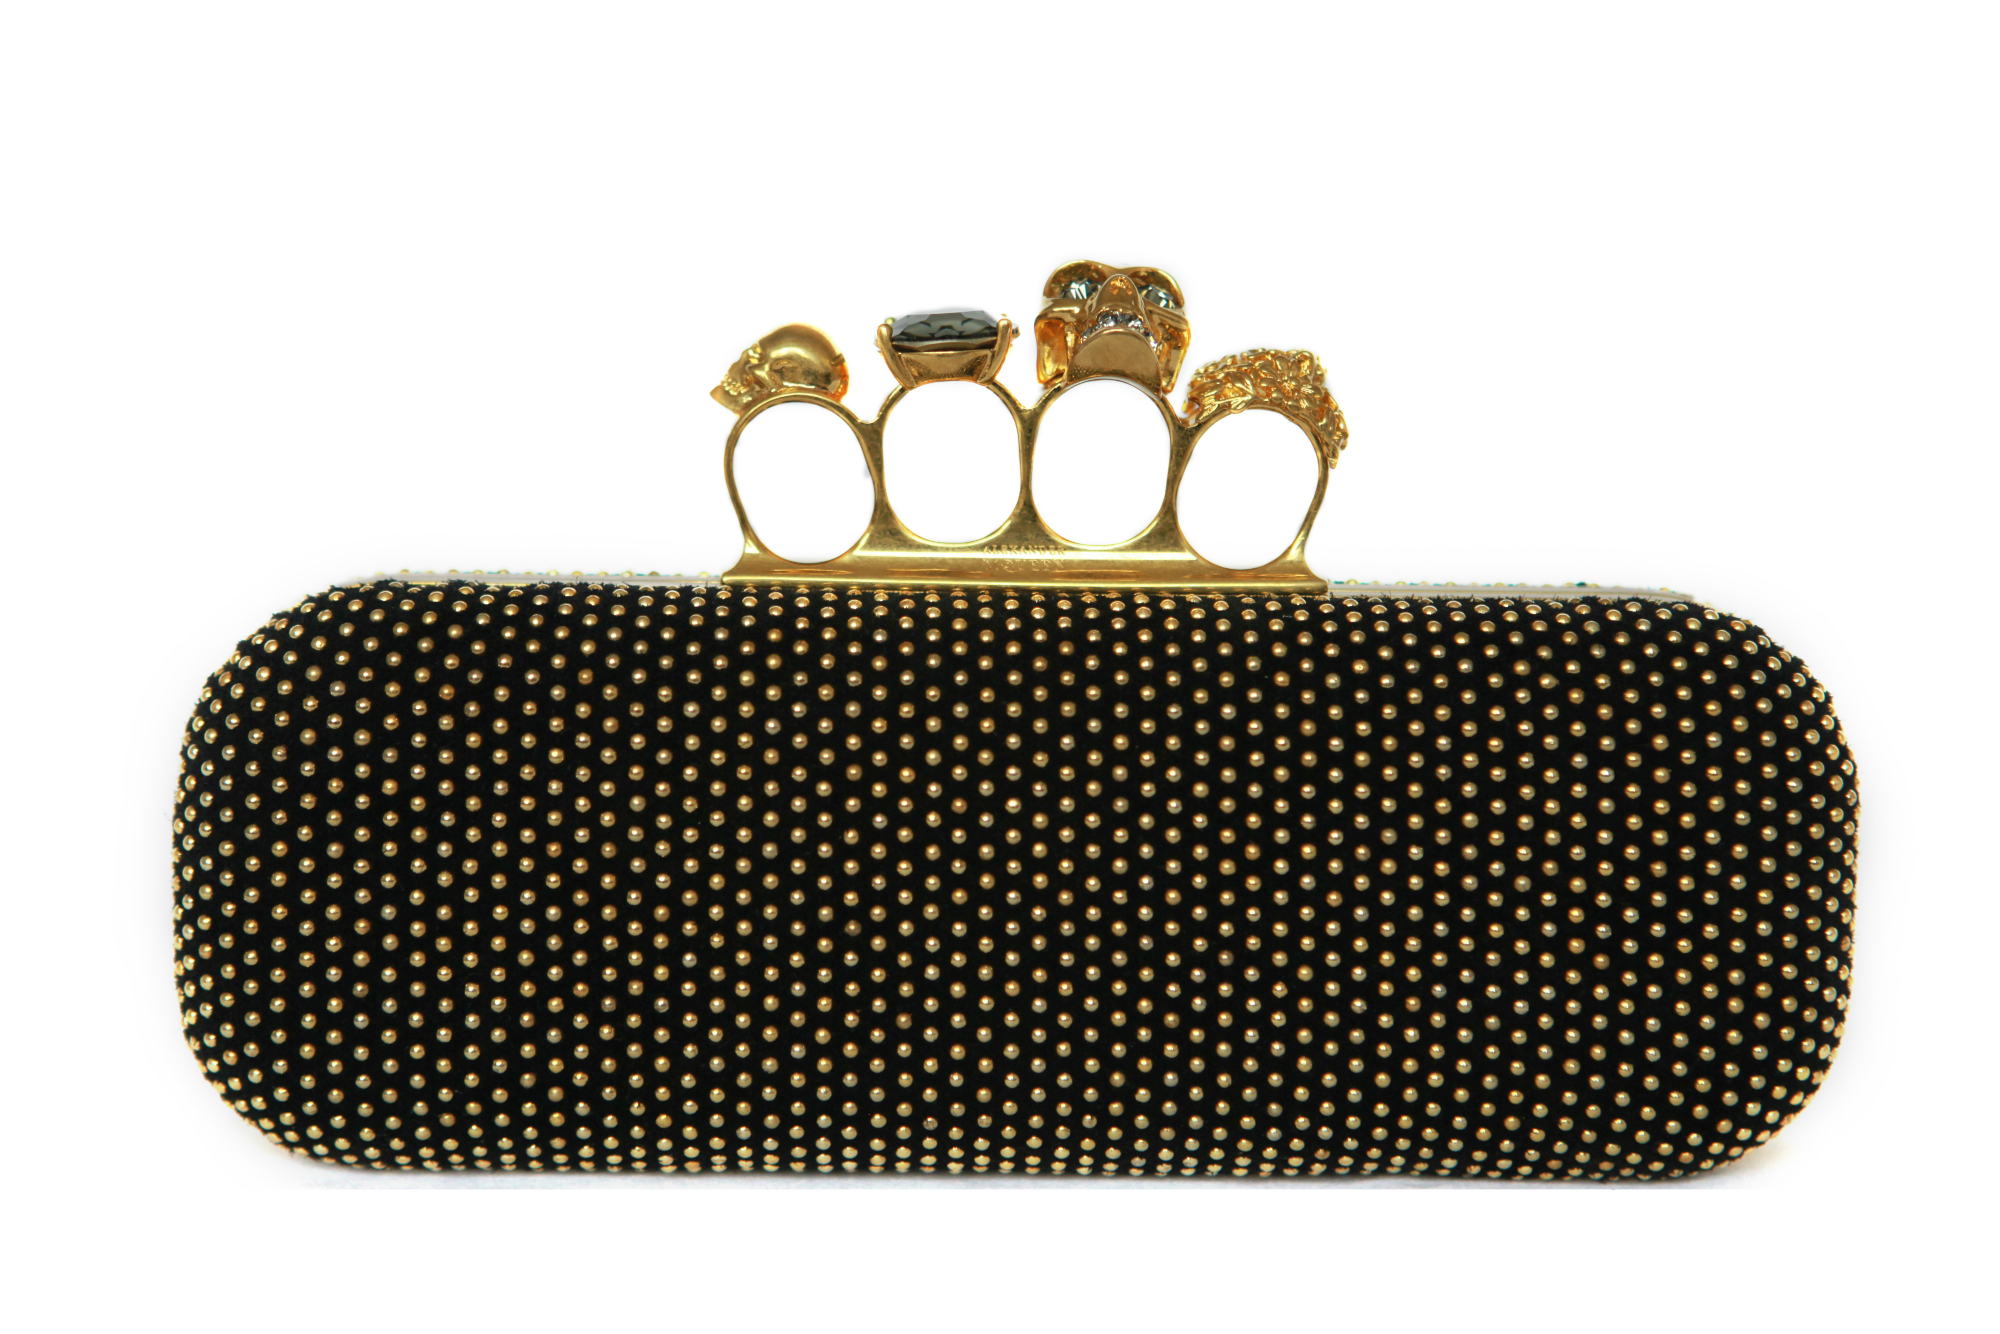 Hire an Alexander McQueen clutch bag from Elite Couture